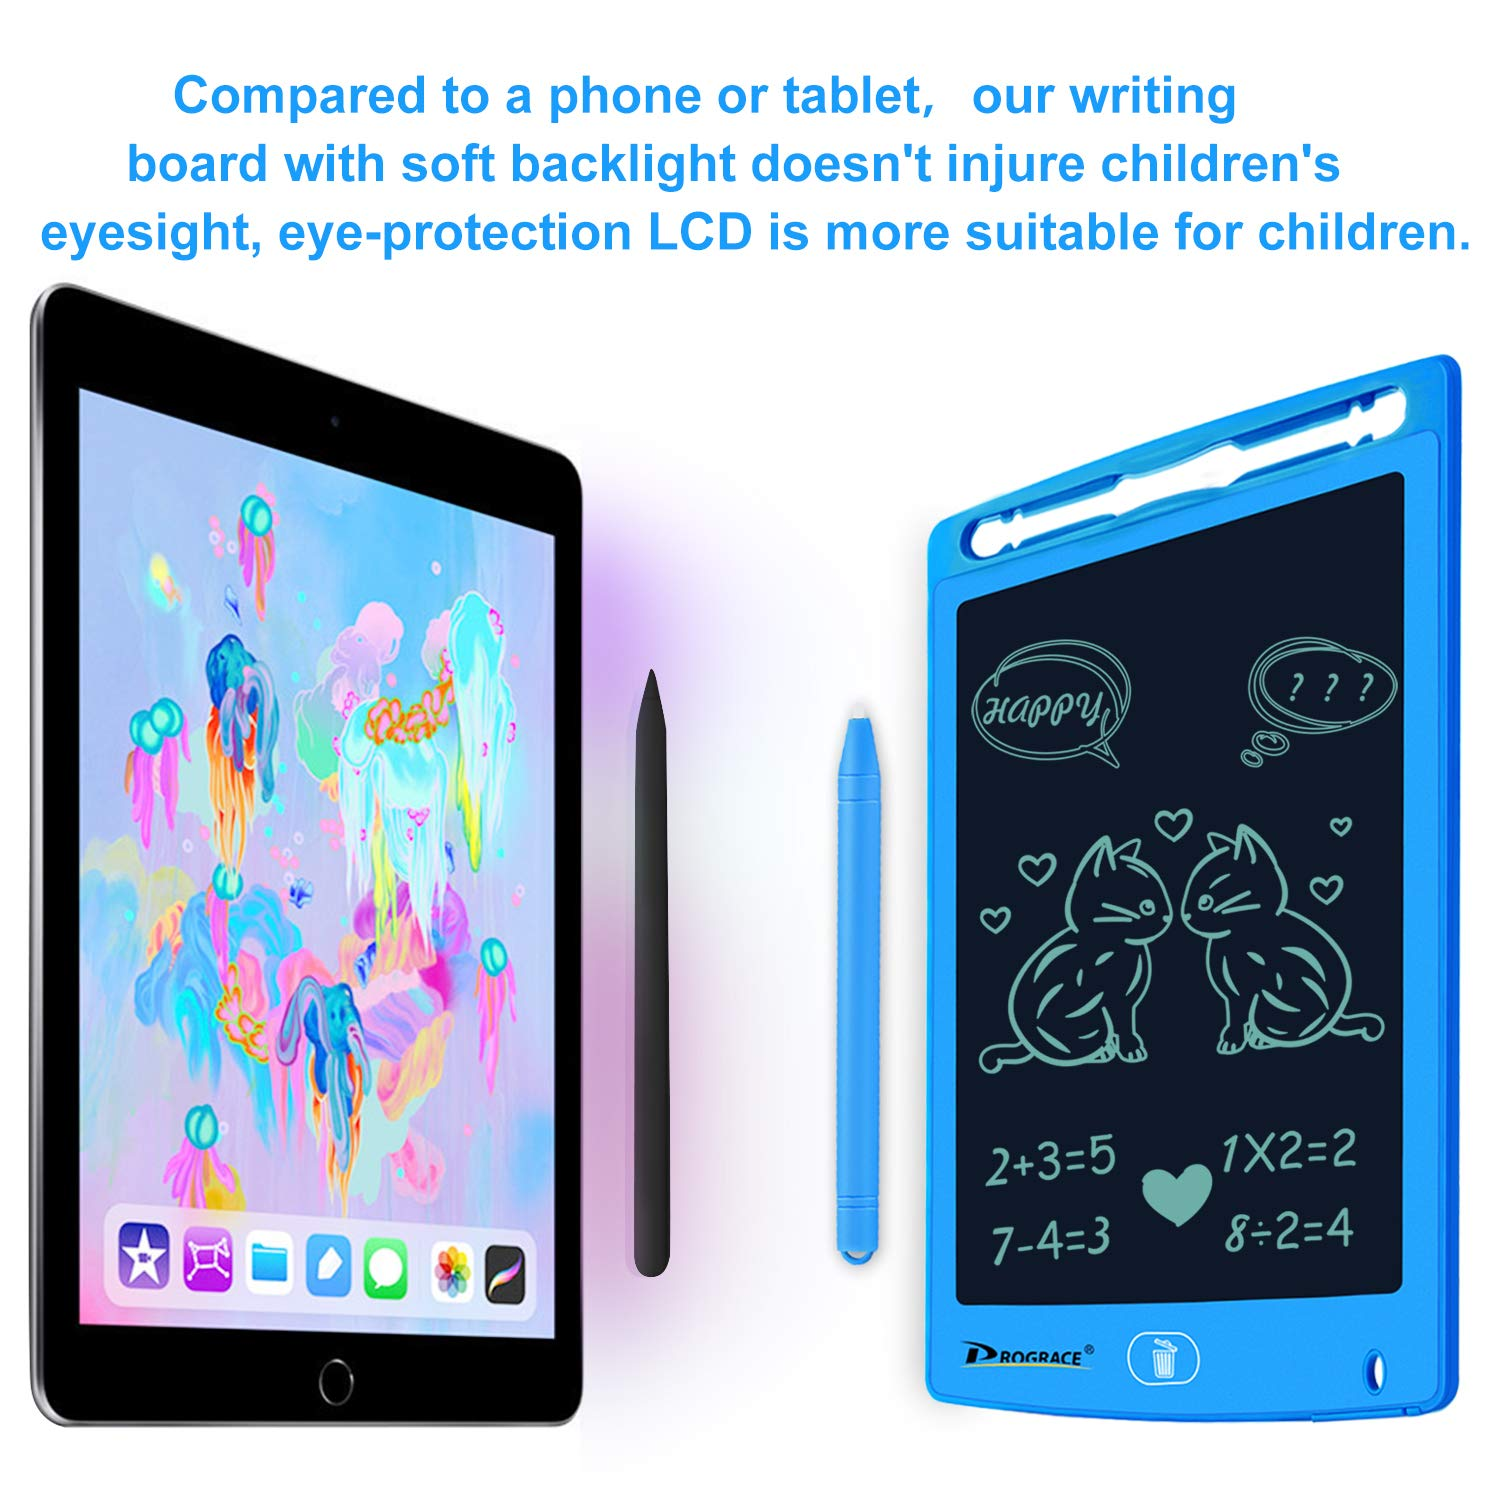 PROGRACE LCD Writing Tablet for Kids Learning Writing Board Magnetic Erase LCD Writing Pad Smart Doodle Drawing Board for Home School Office Portable Electronic Digital Handwriting Pad 8.5\